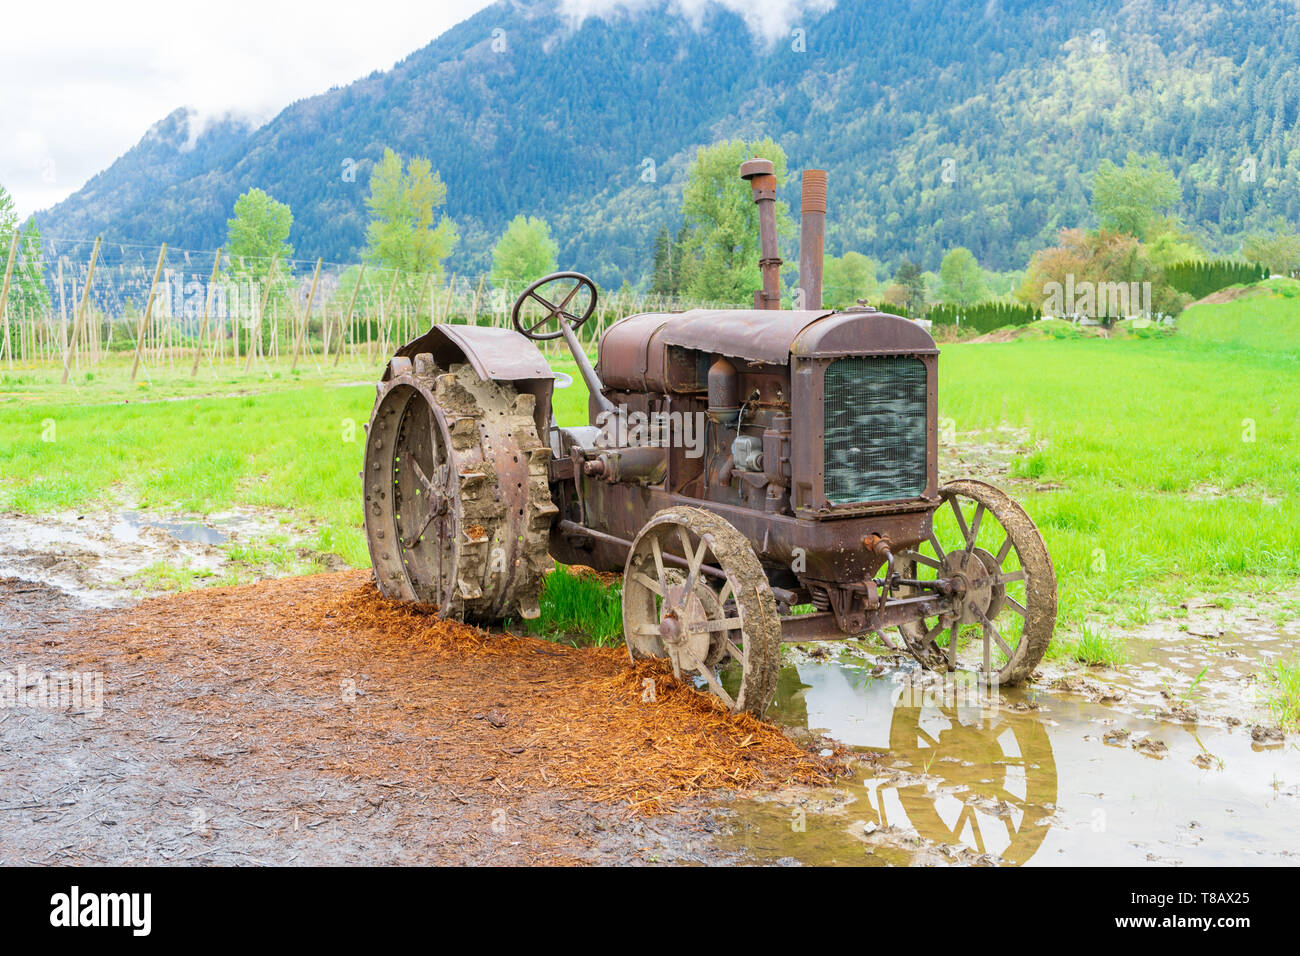 Vintage tractor farm equipment on a real farm, rusted and